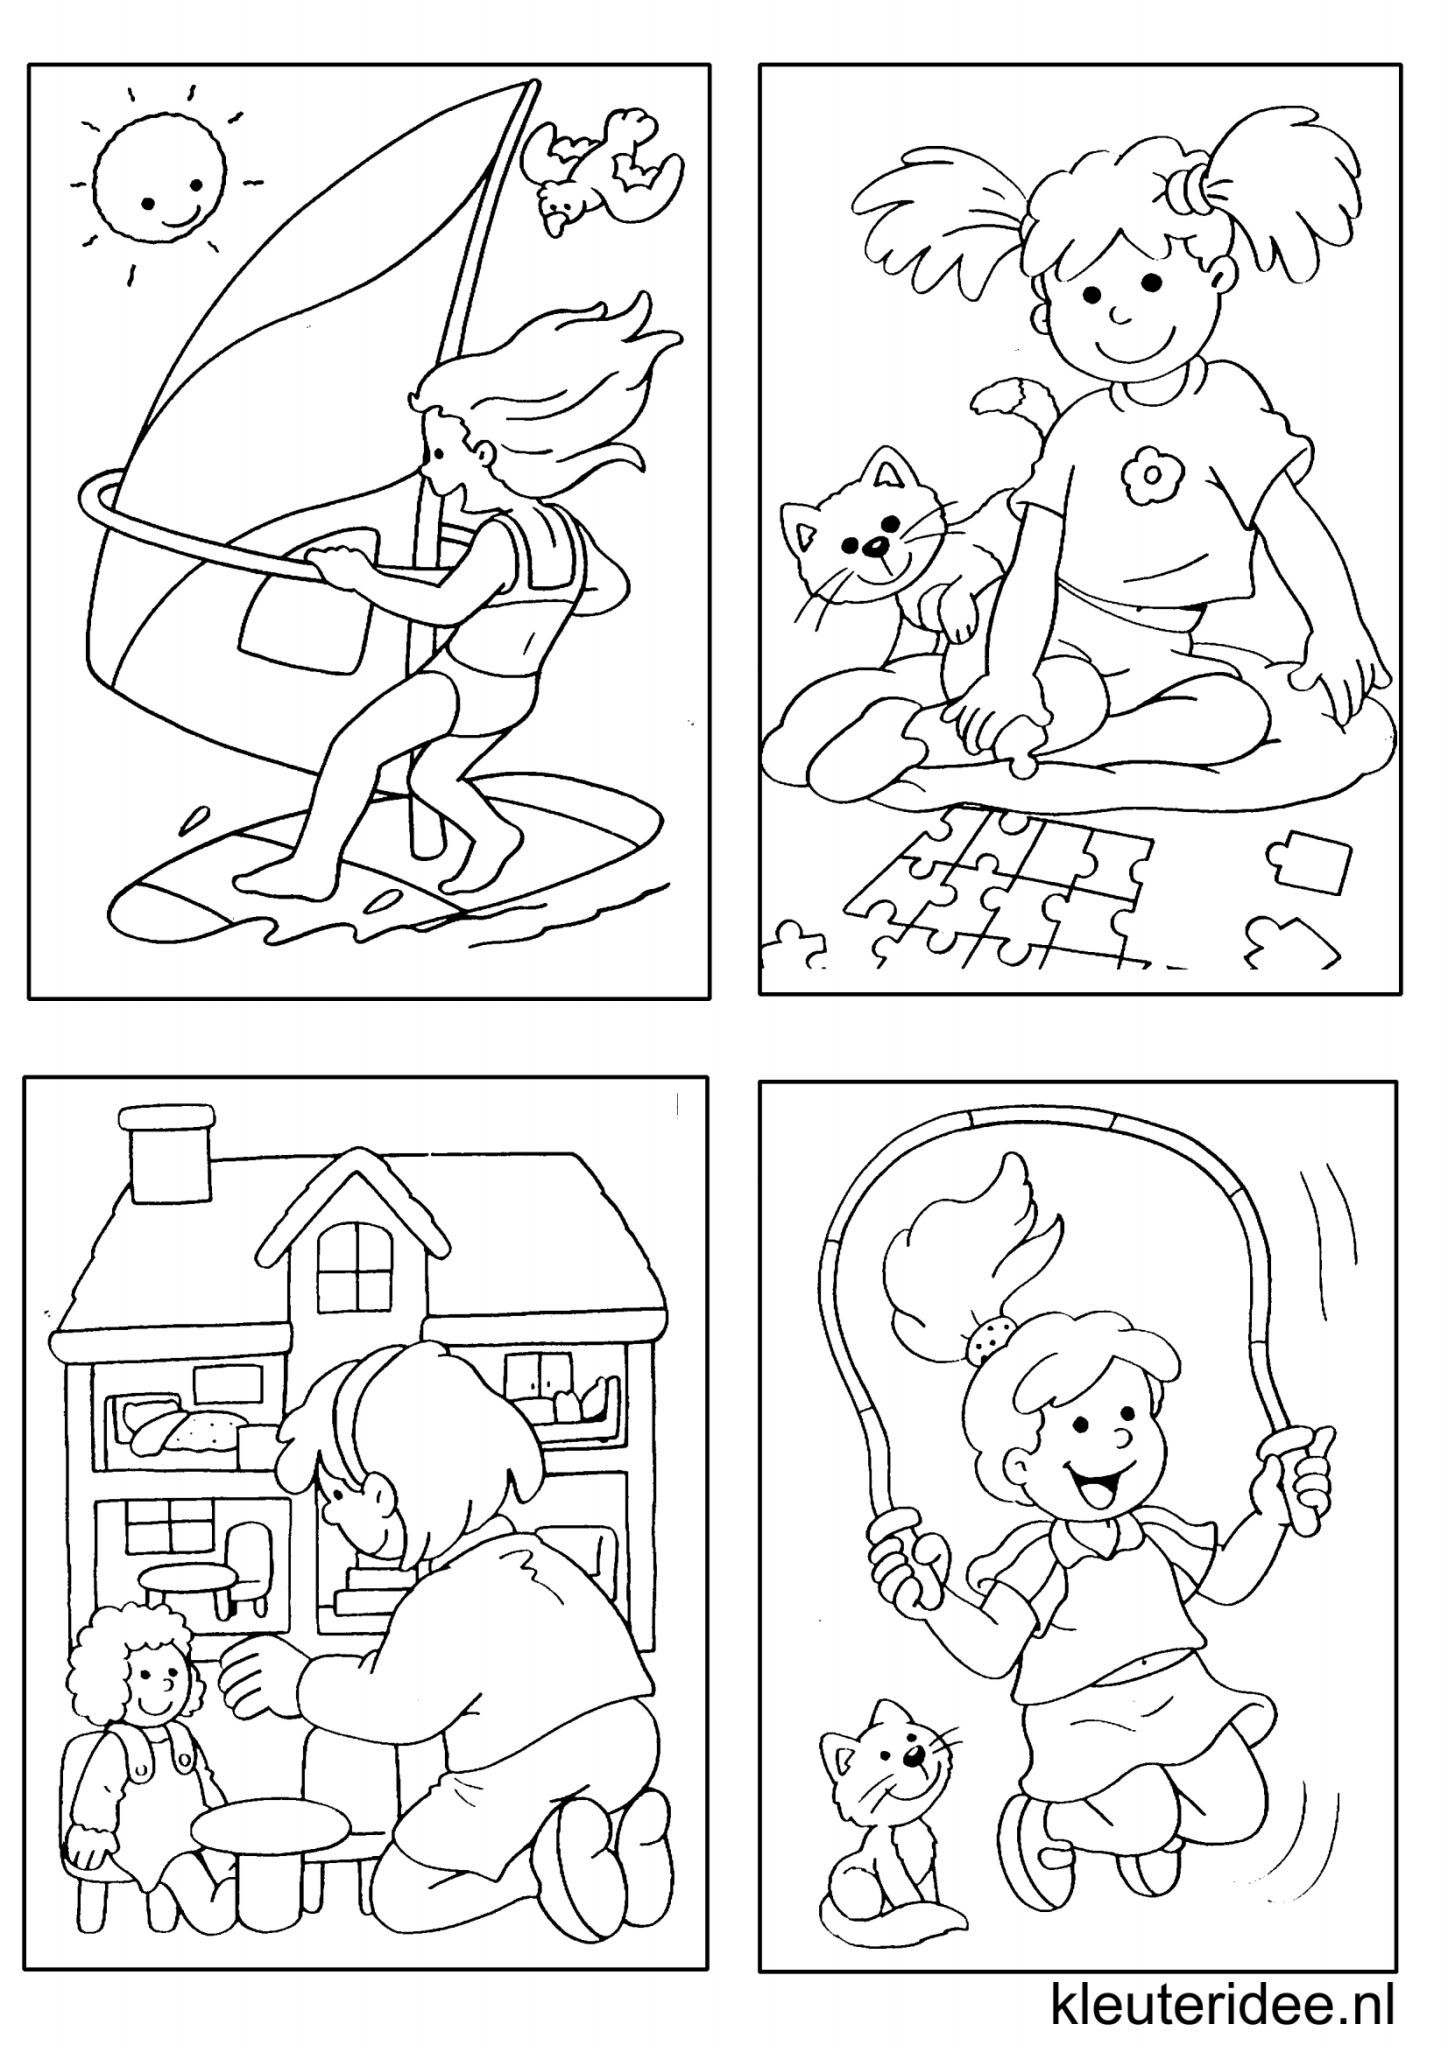 Shared With Dropbox Colouring Pages Coloring Pages Coloring Pages For Kids